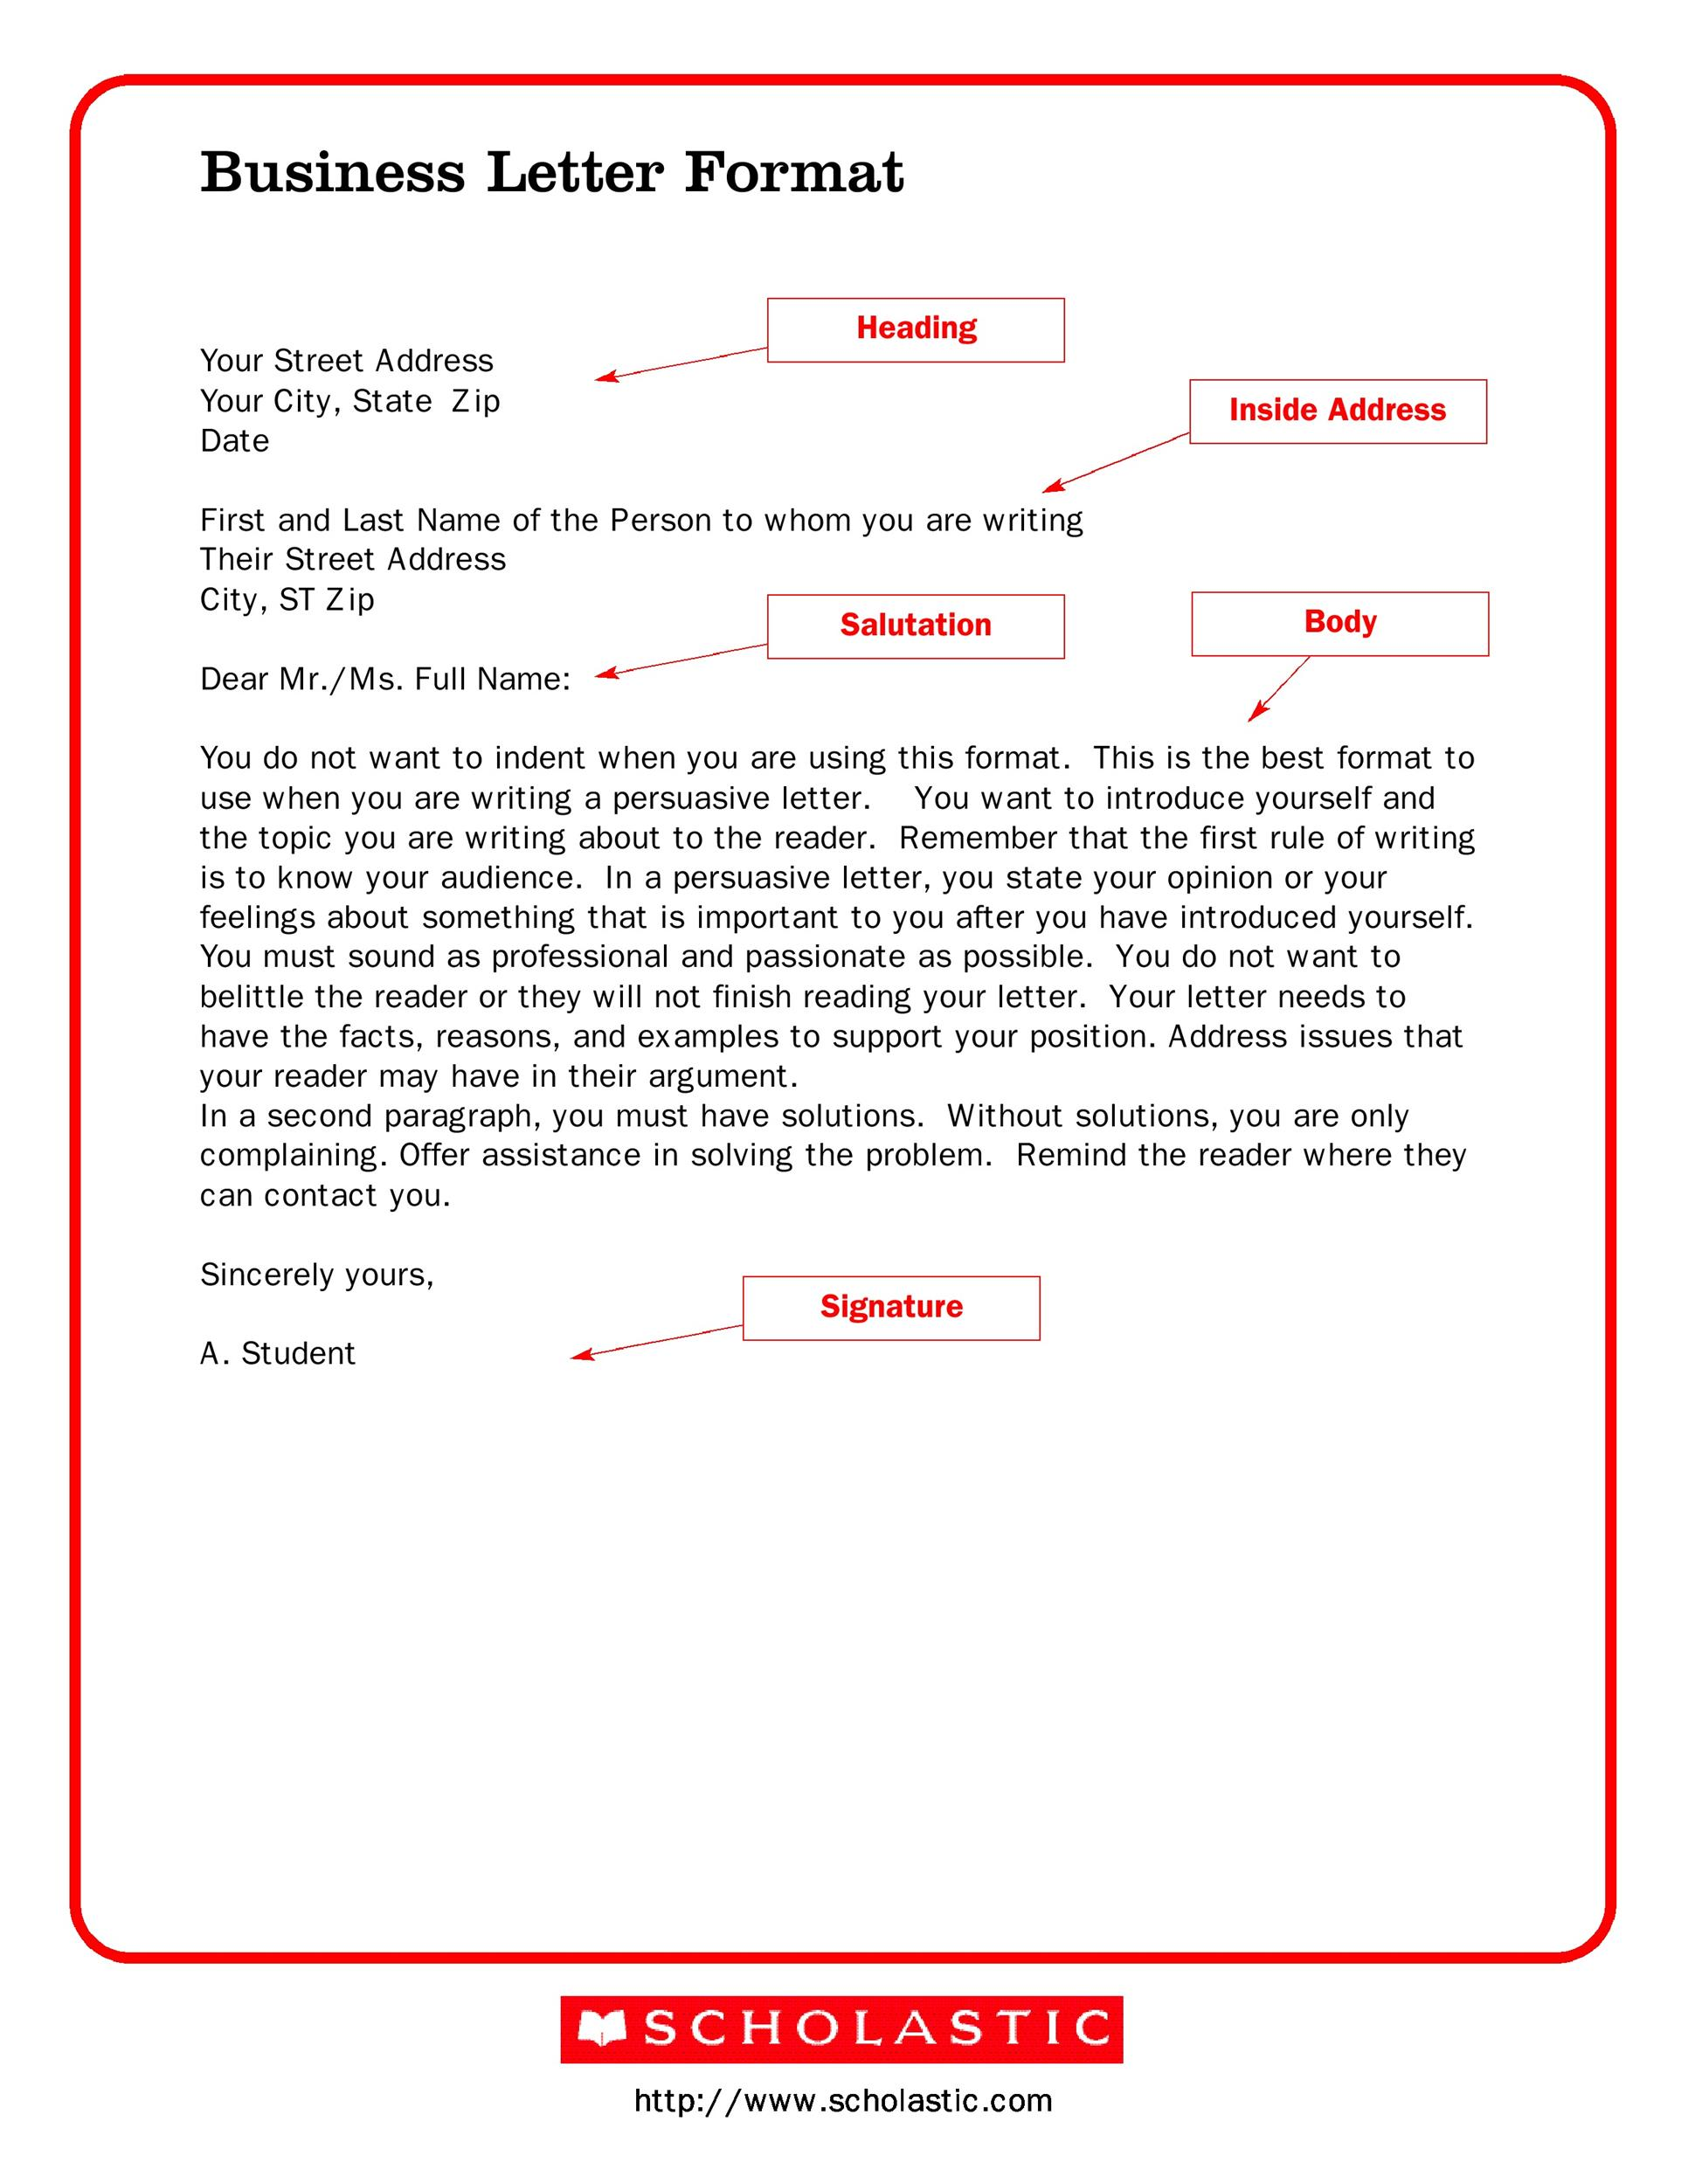 35 Formal / Business Letter Format Templates & Examples ᐅ Template Lab